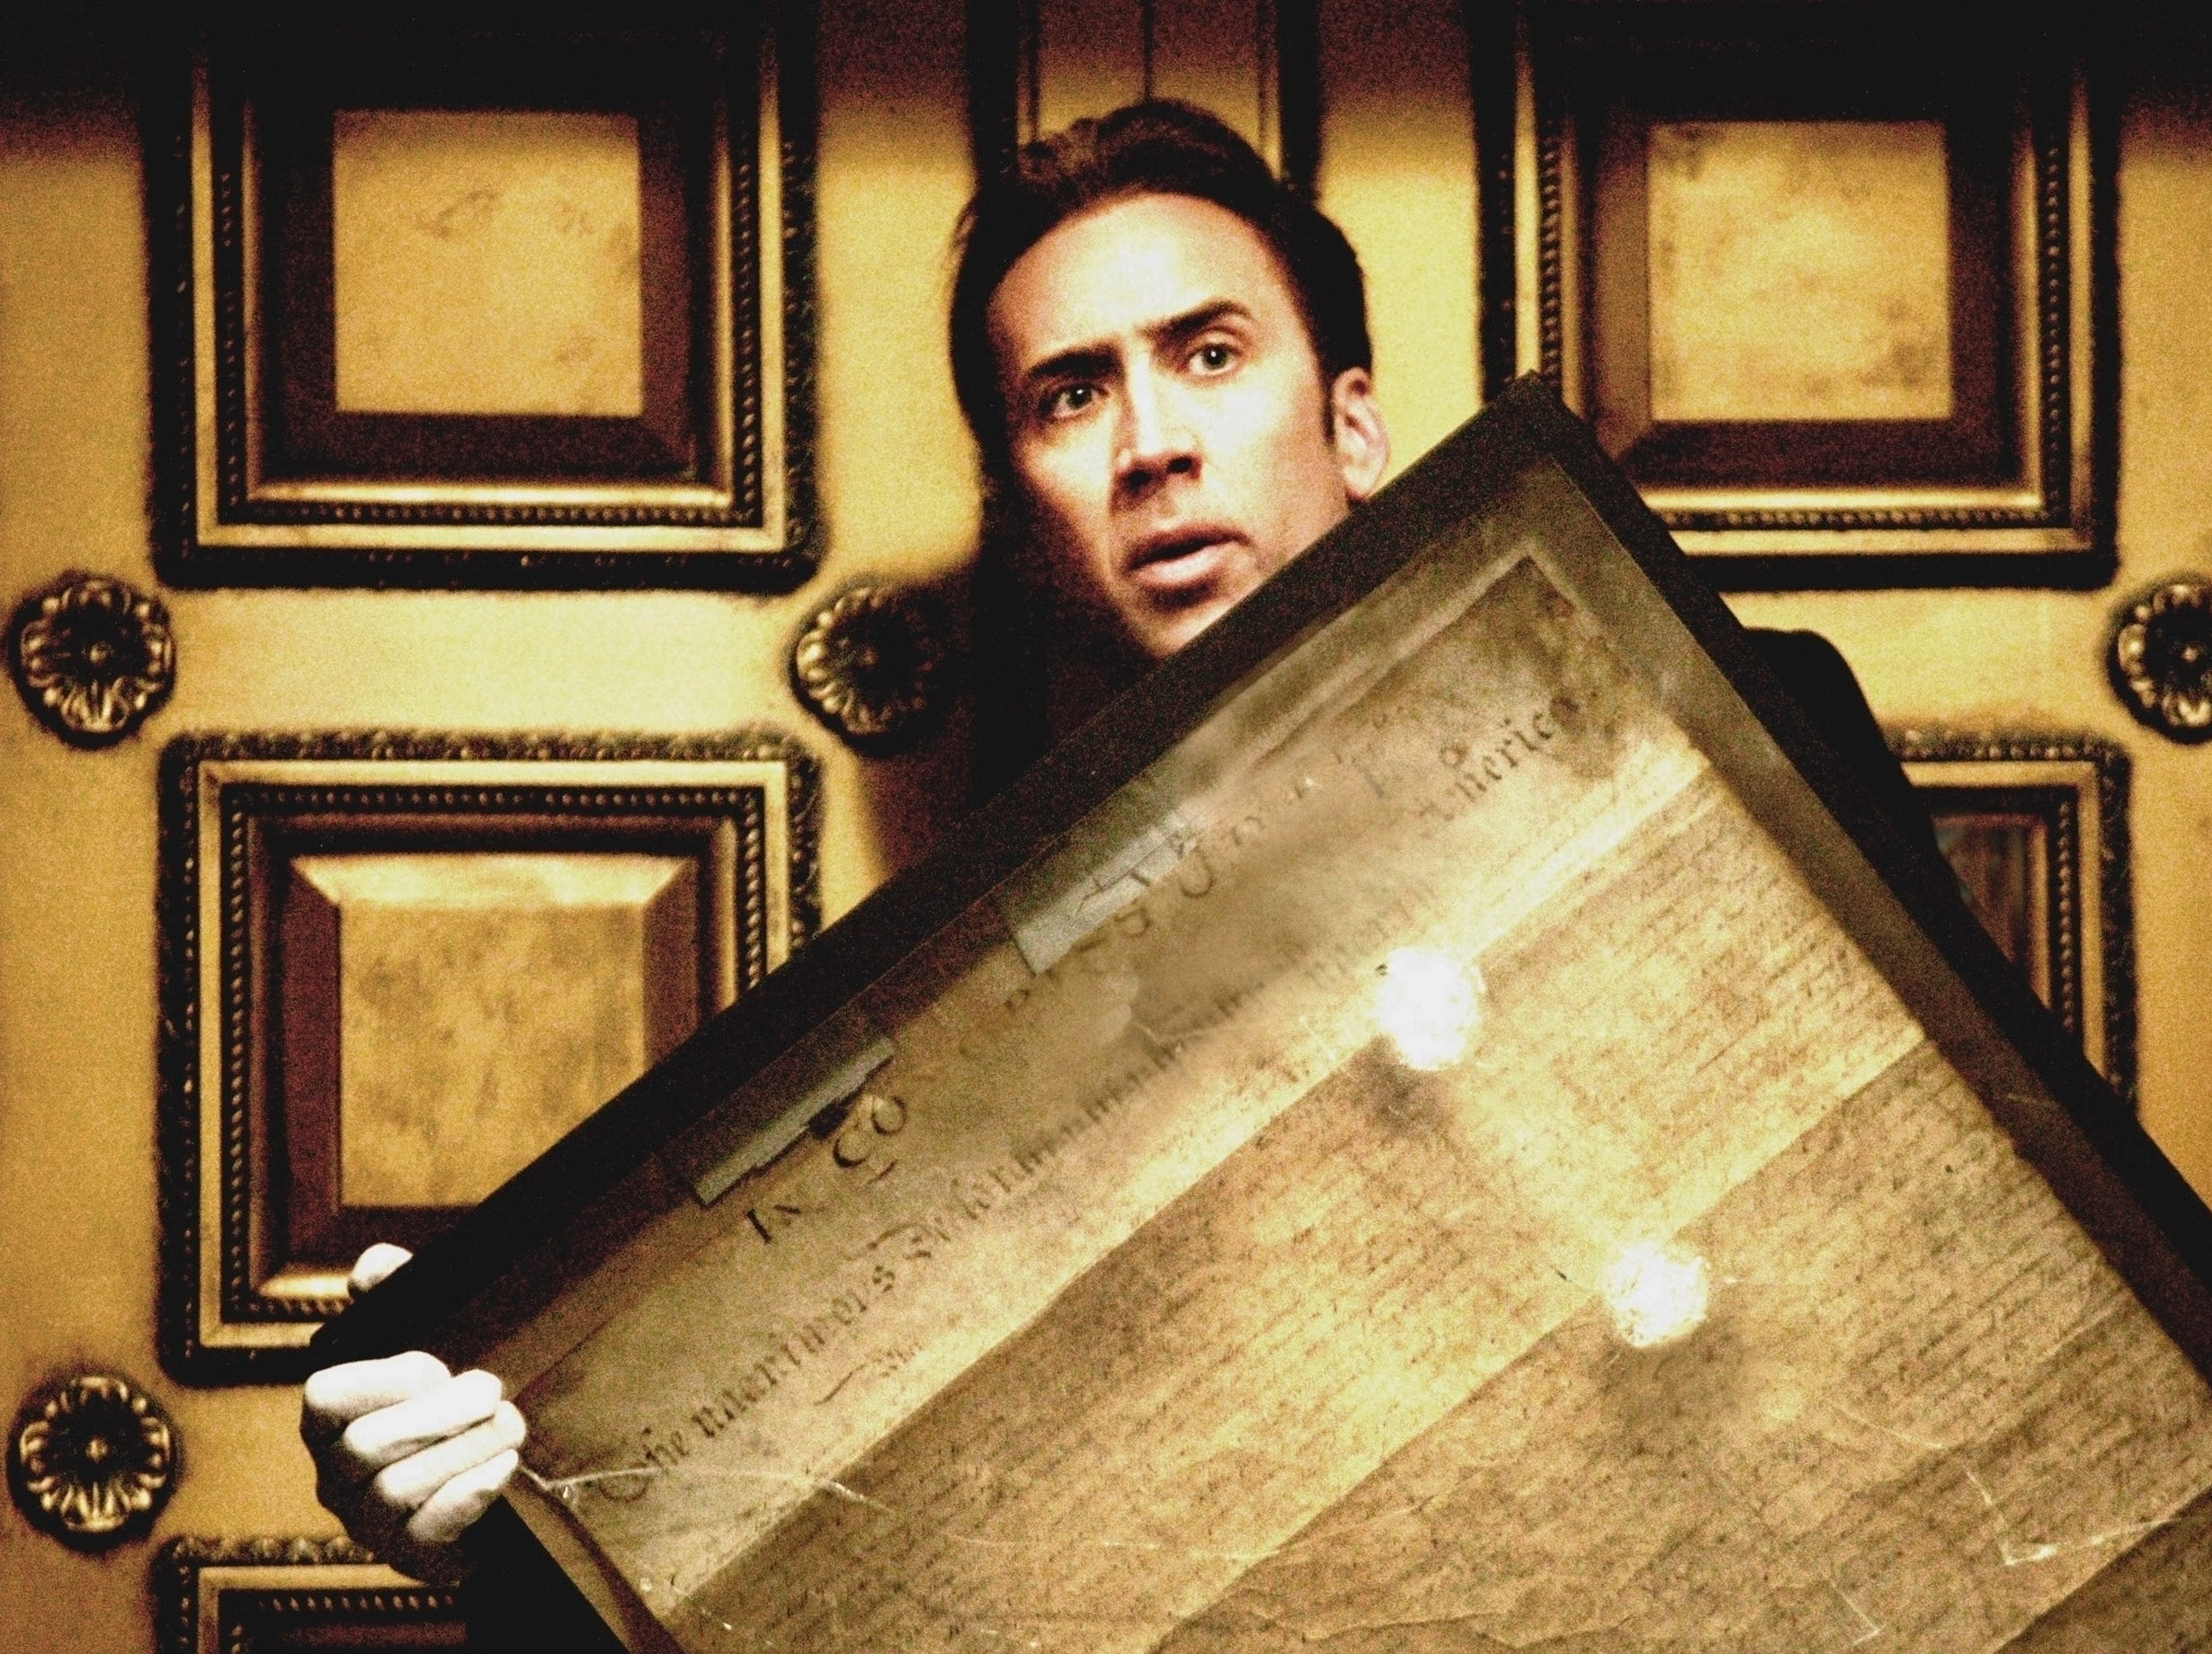 Ben Gates (Nicolas Cgae) in a scene from the motion picture National Treasure. --- DATE TAKEN: Rec'd 11/04  By Robert Zuckerman   Touchstone Pictures        HO      - handout   ORG XMIT: ZX28502